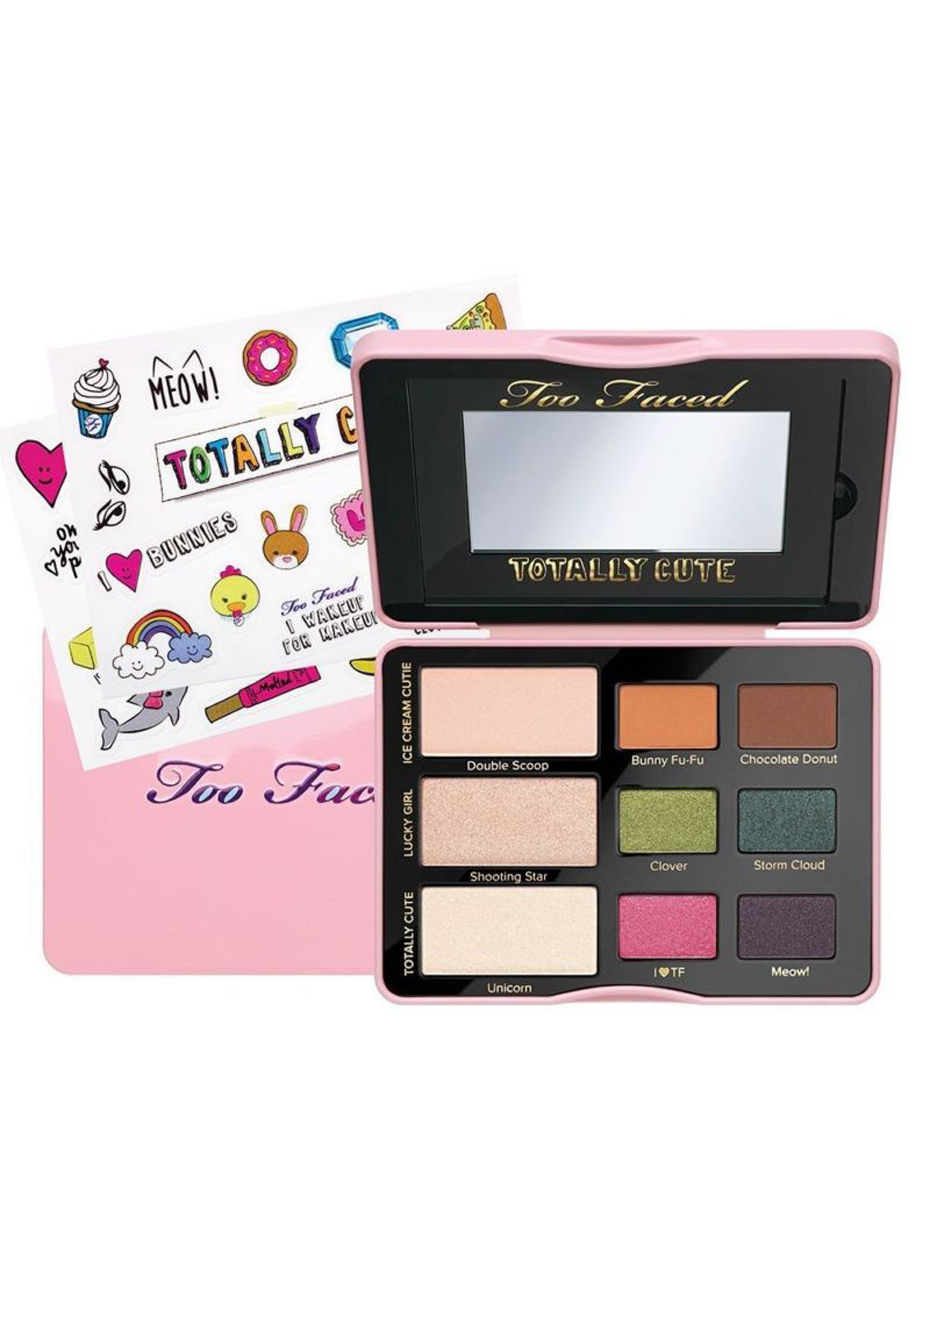 Big W Stickers Too Faced Set Totally Cute Sticker Eye Shadow Collection Palette